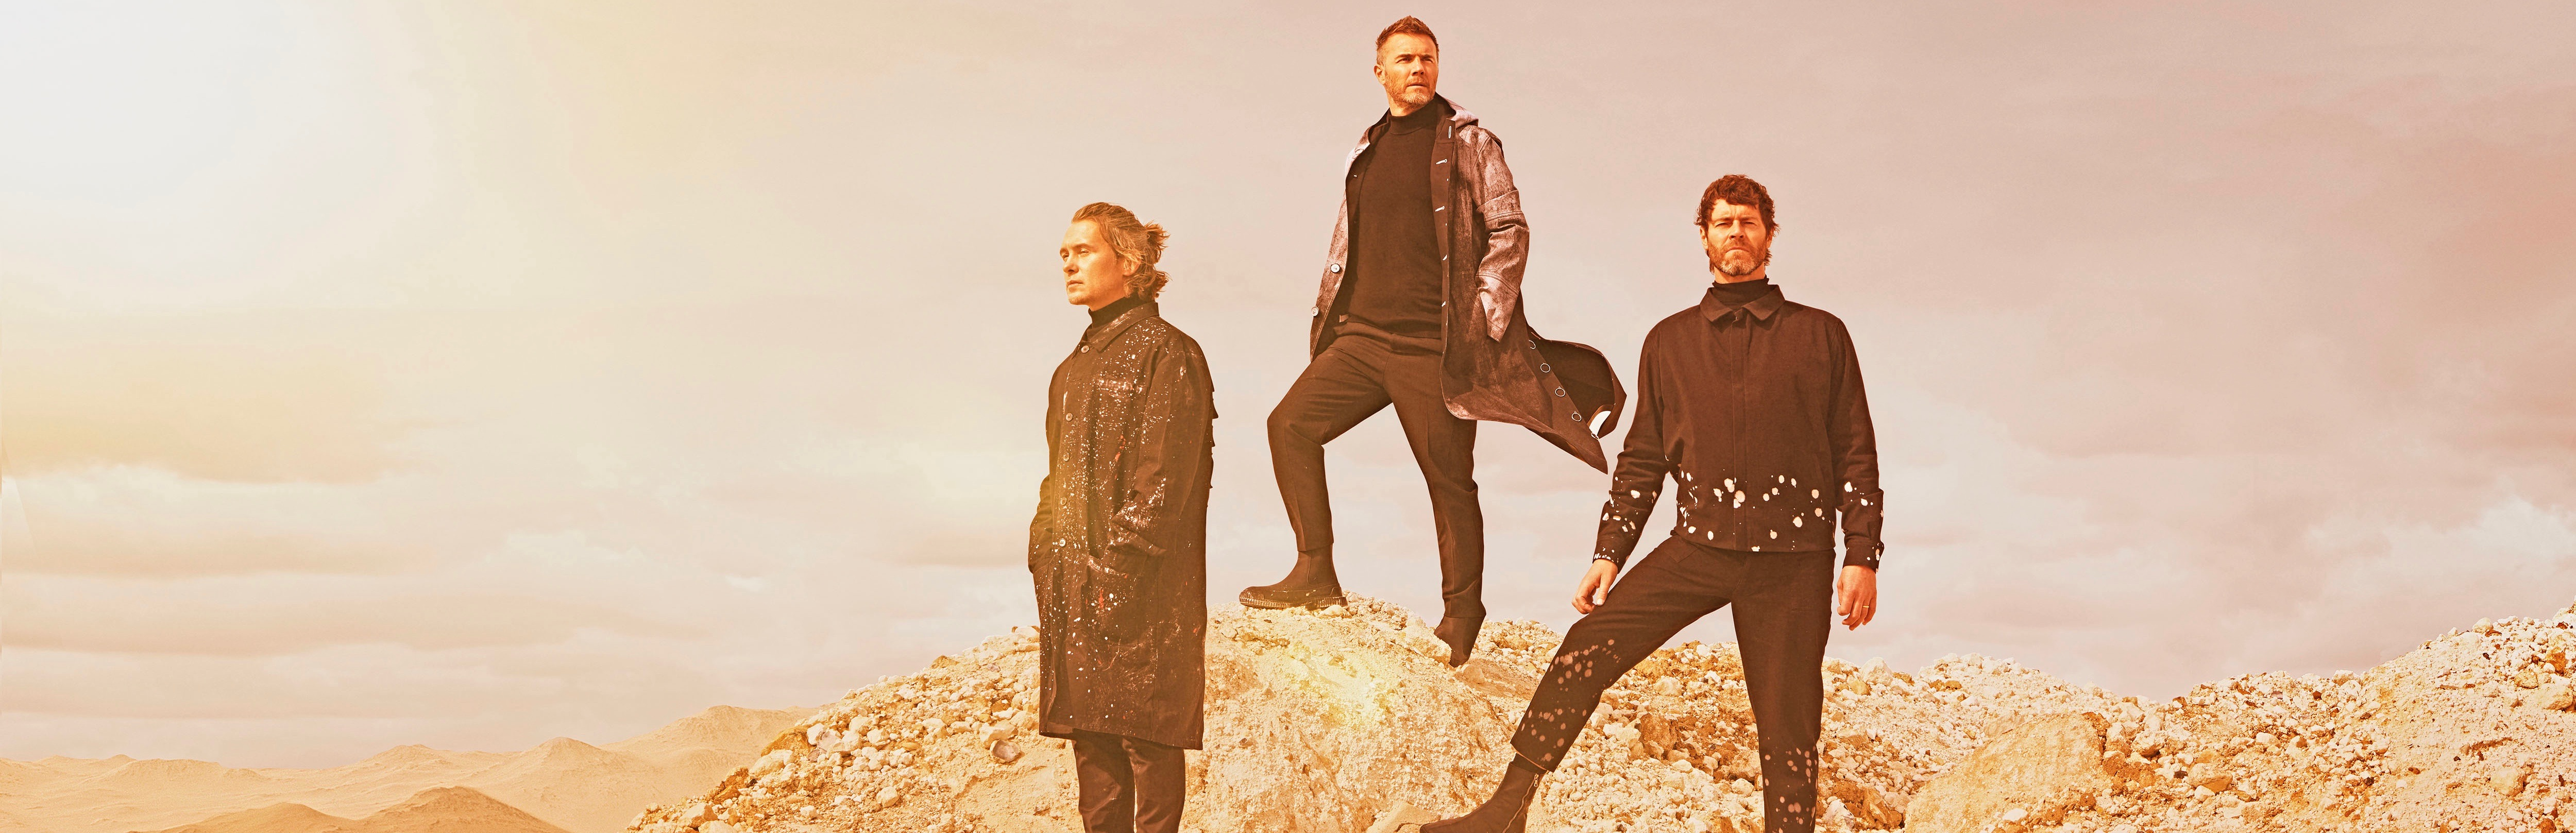 Take-That-Band-Image-2